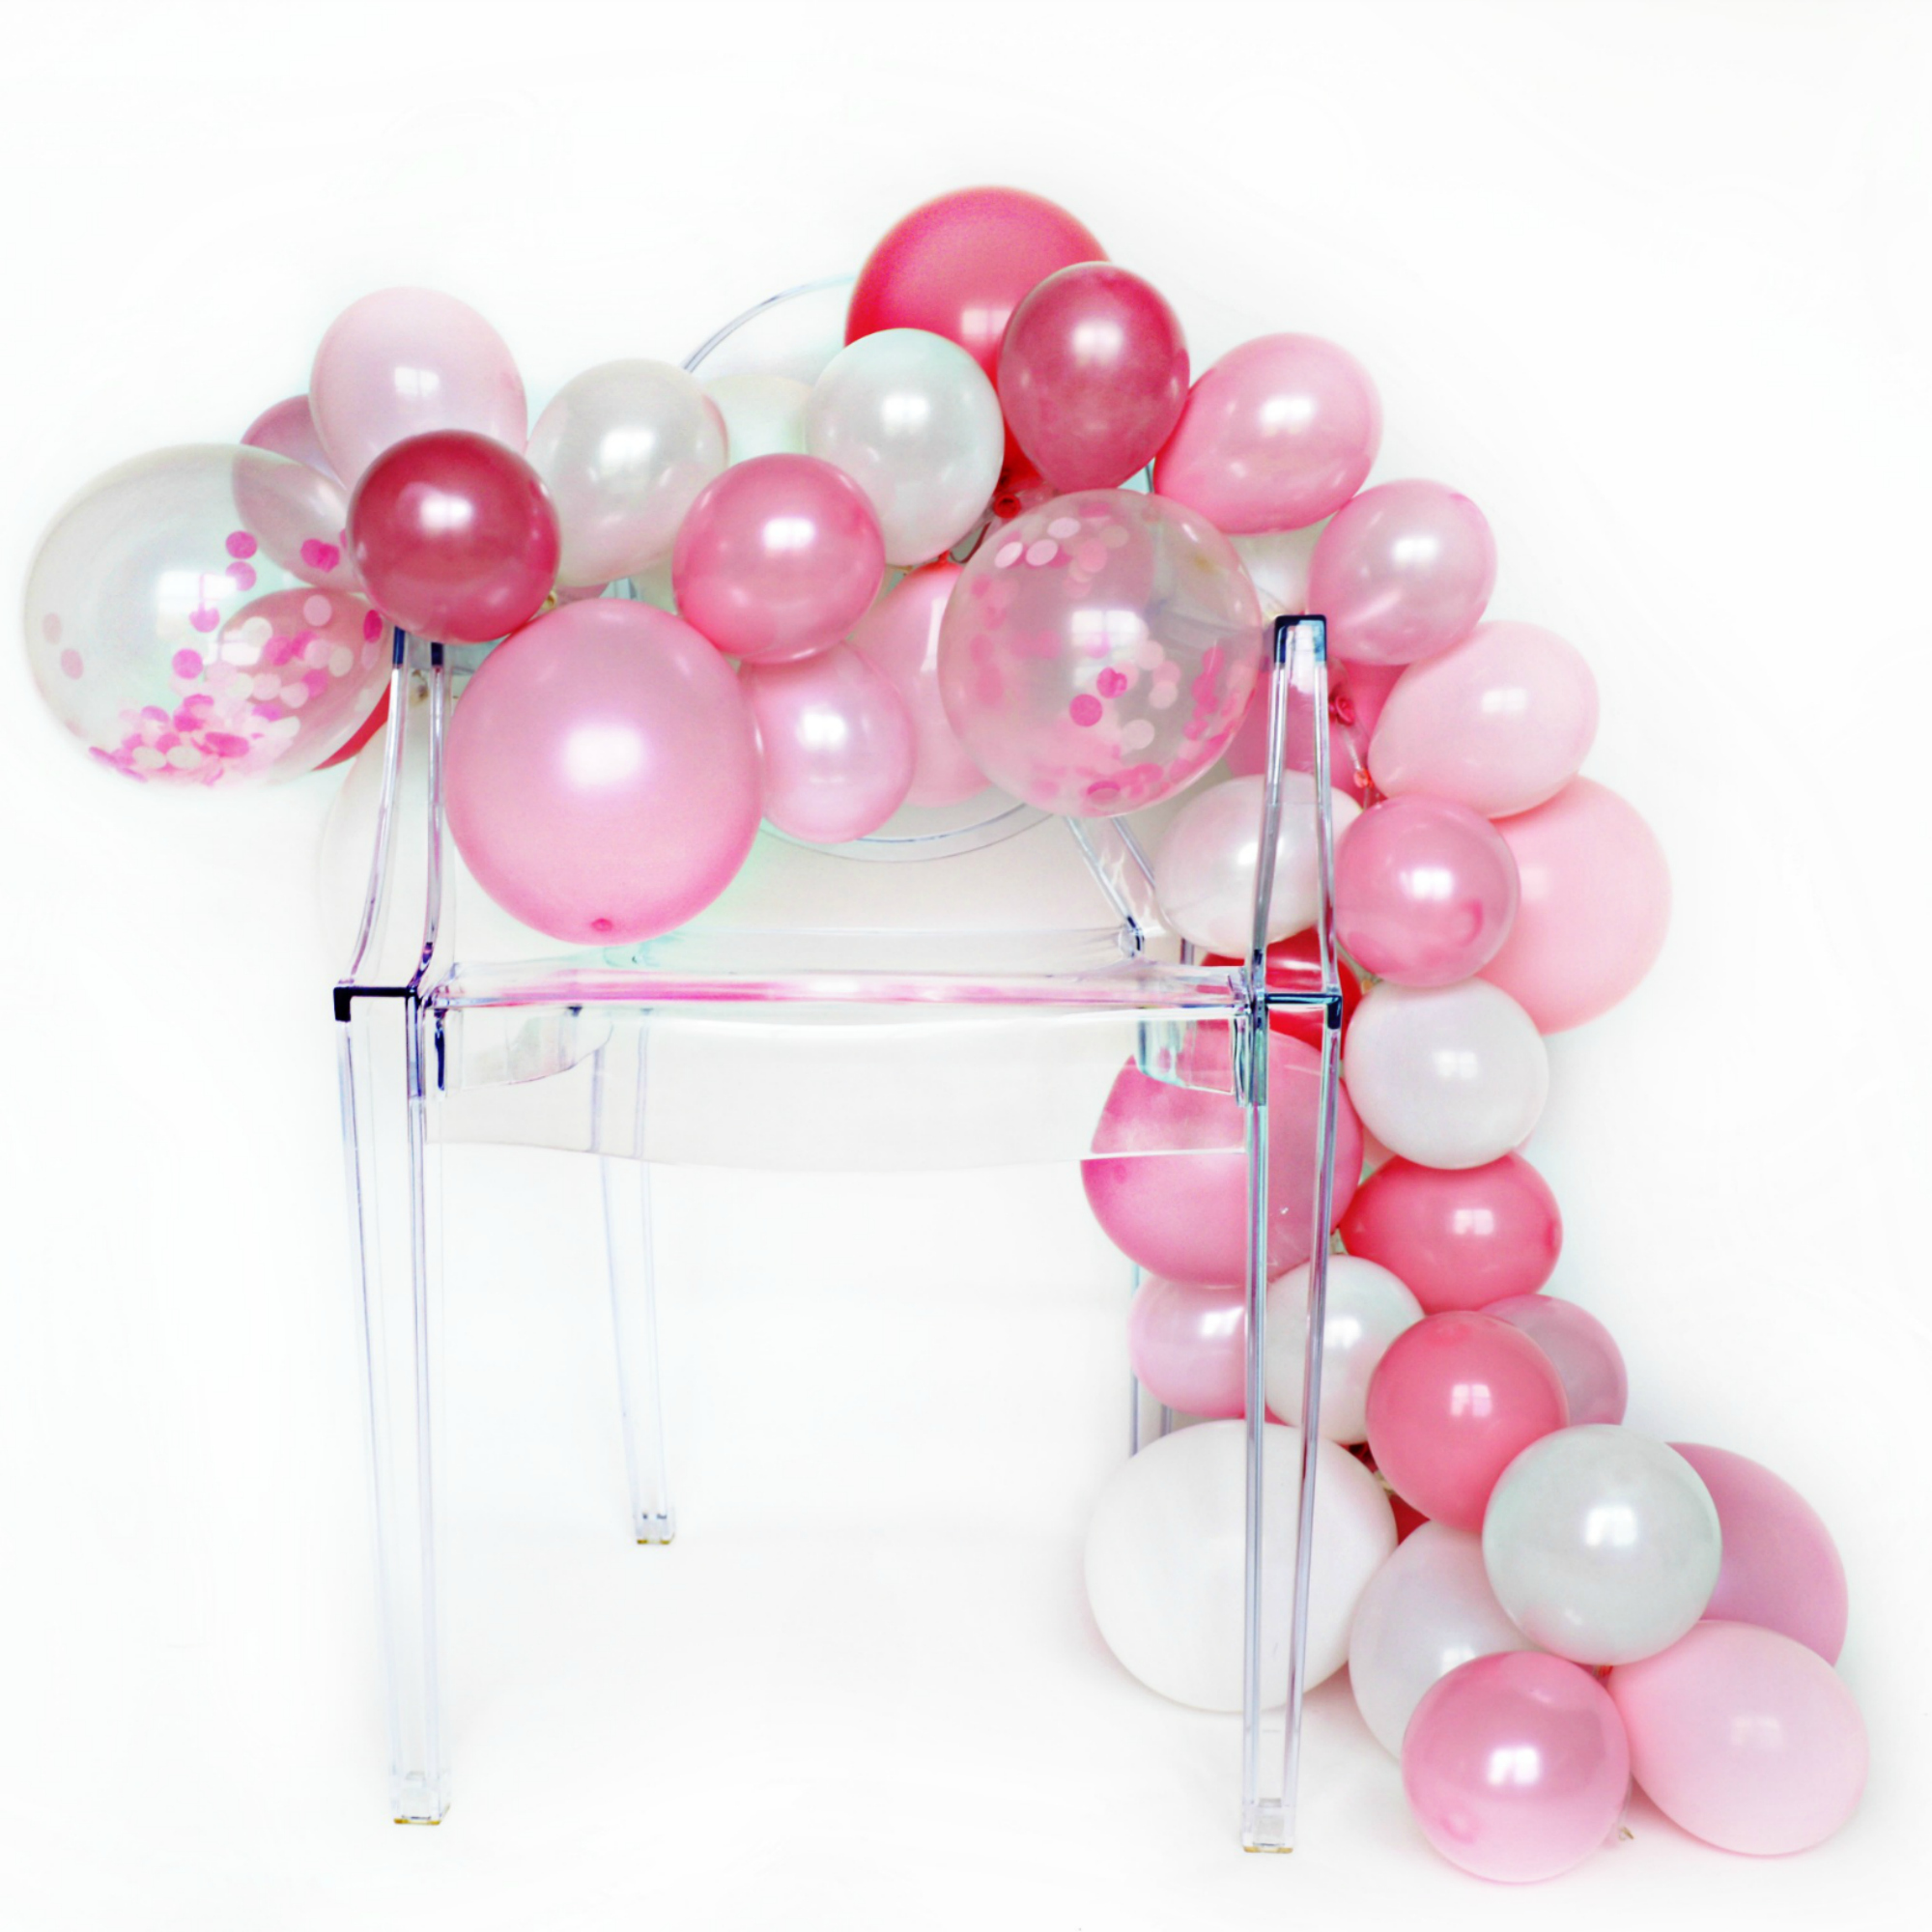 Diy Balloon Garland Kit Pink Peony